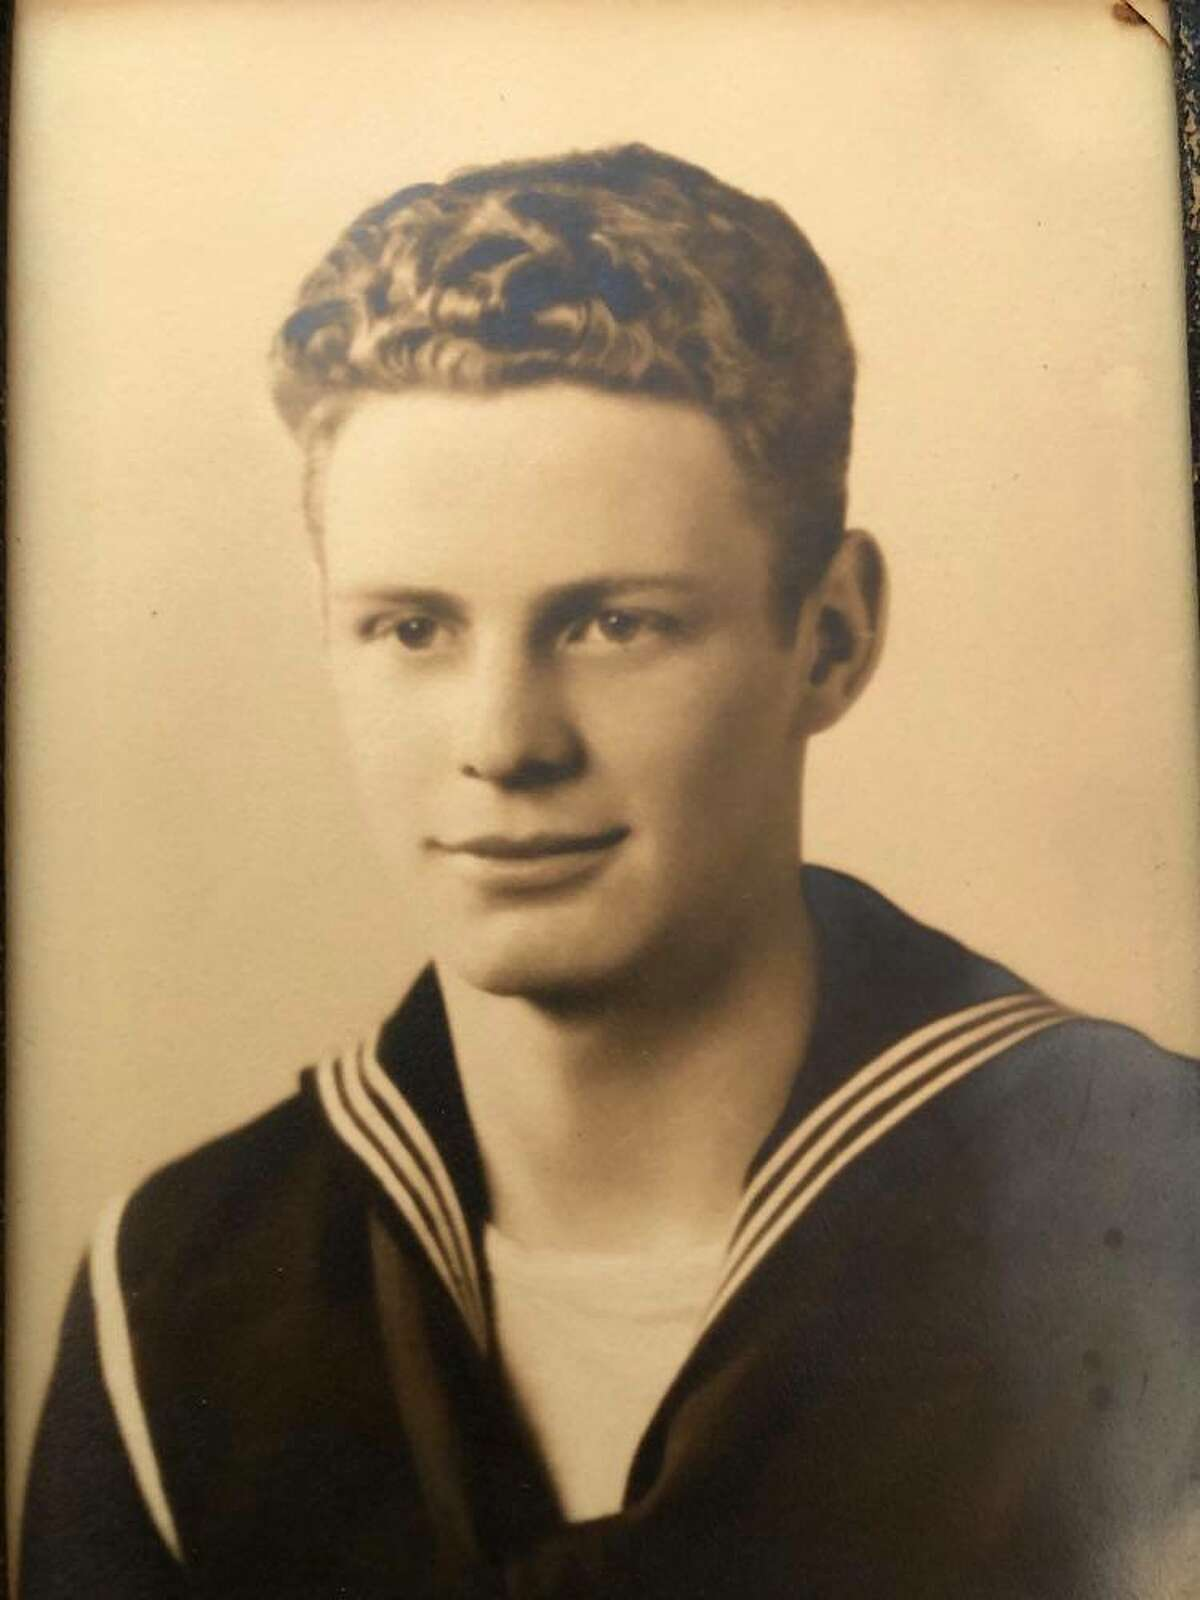 Cliff Miles served in the U.S. Navy as an aviation cadet from 1943 to 1946.